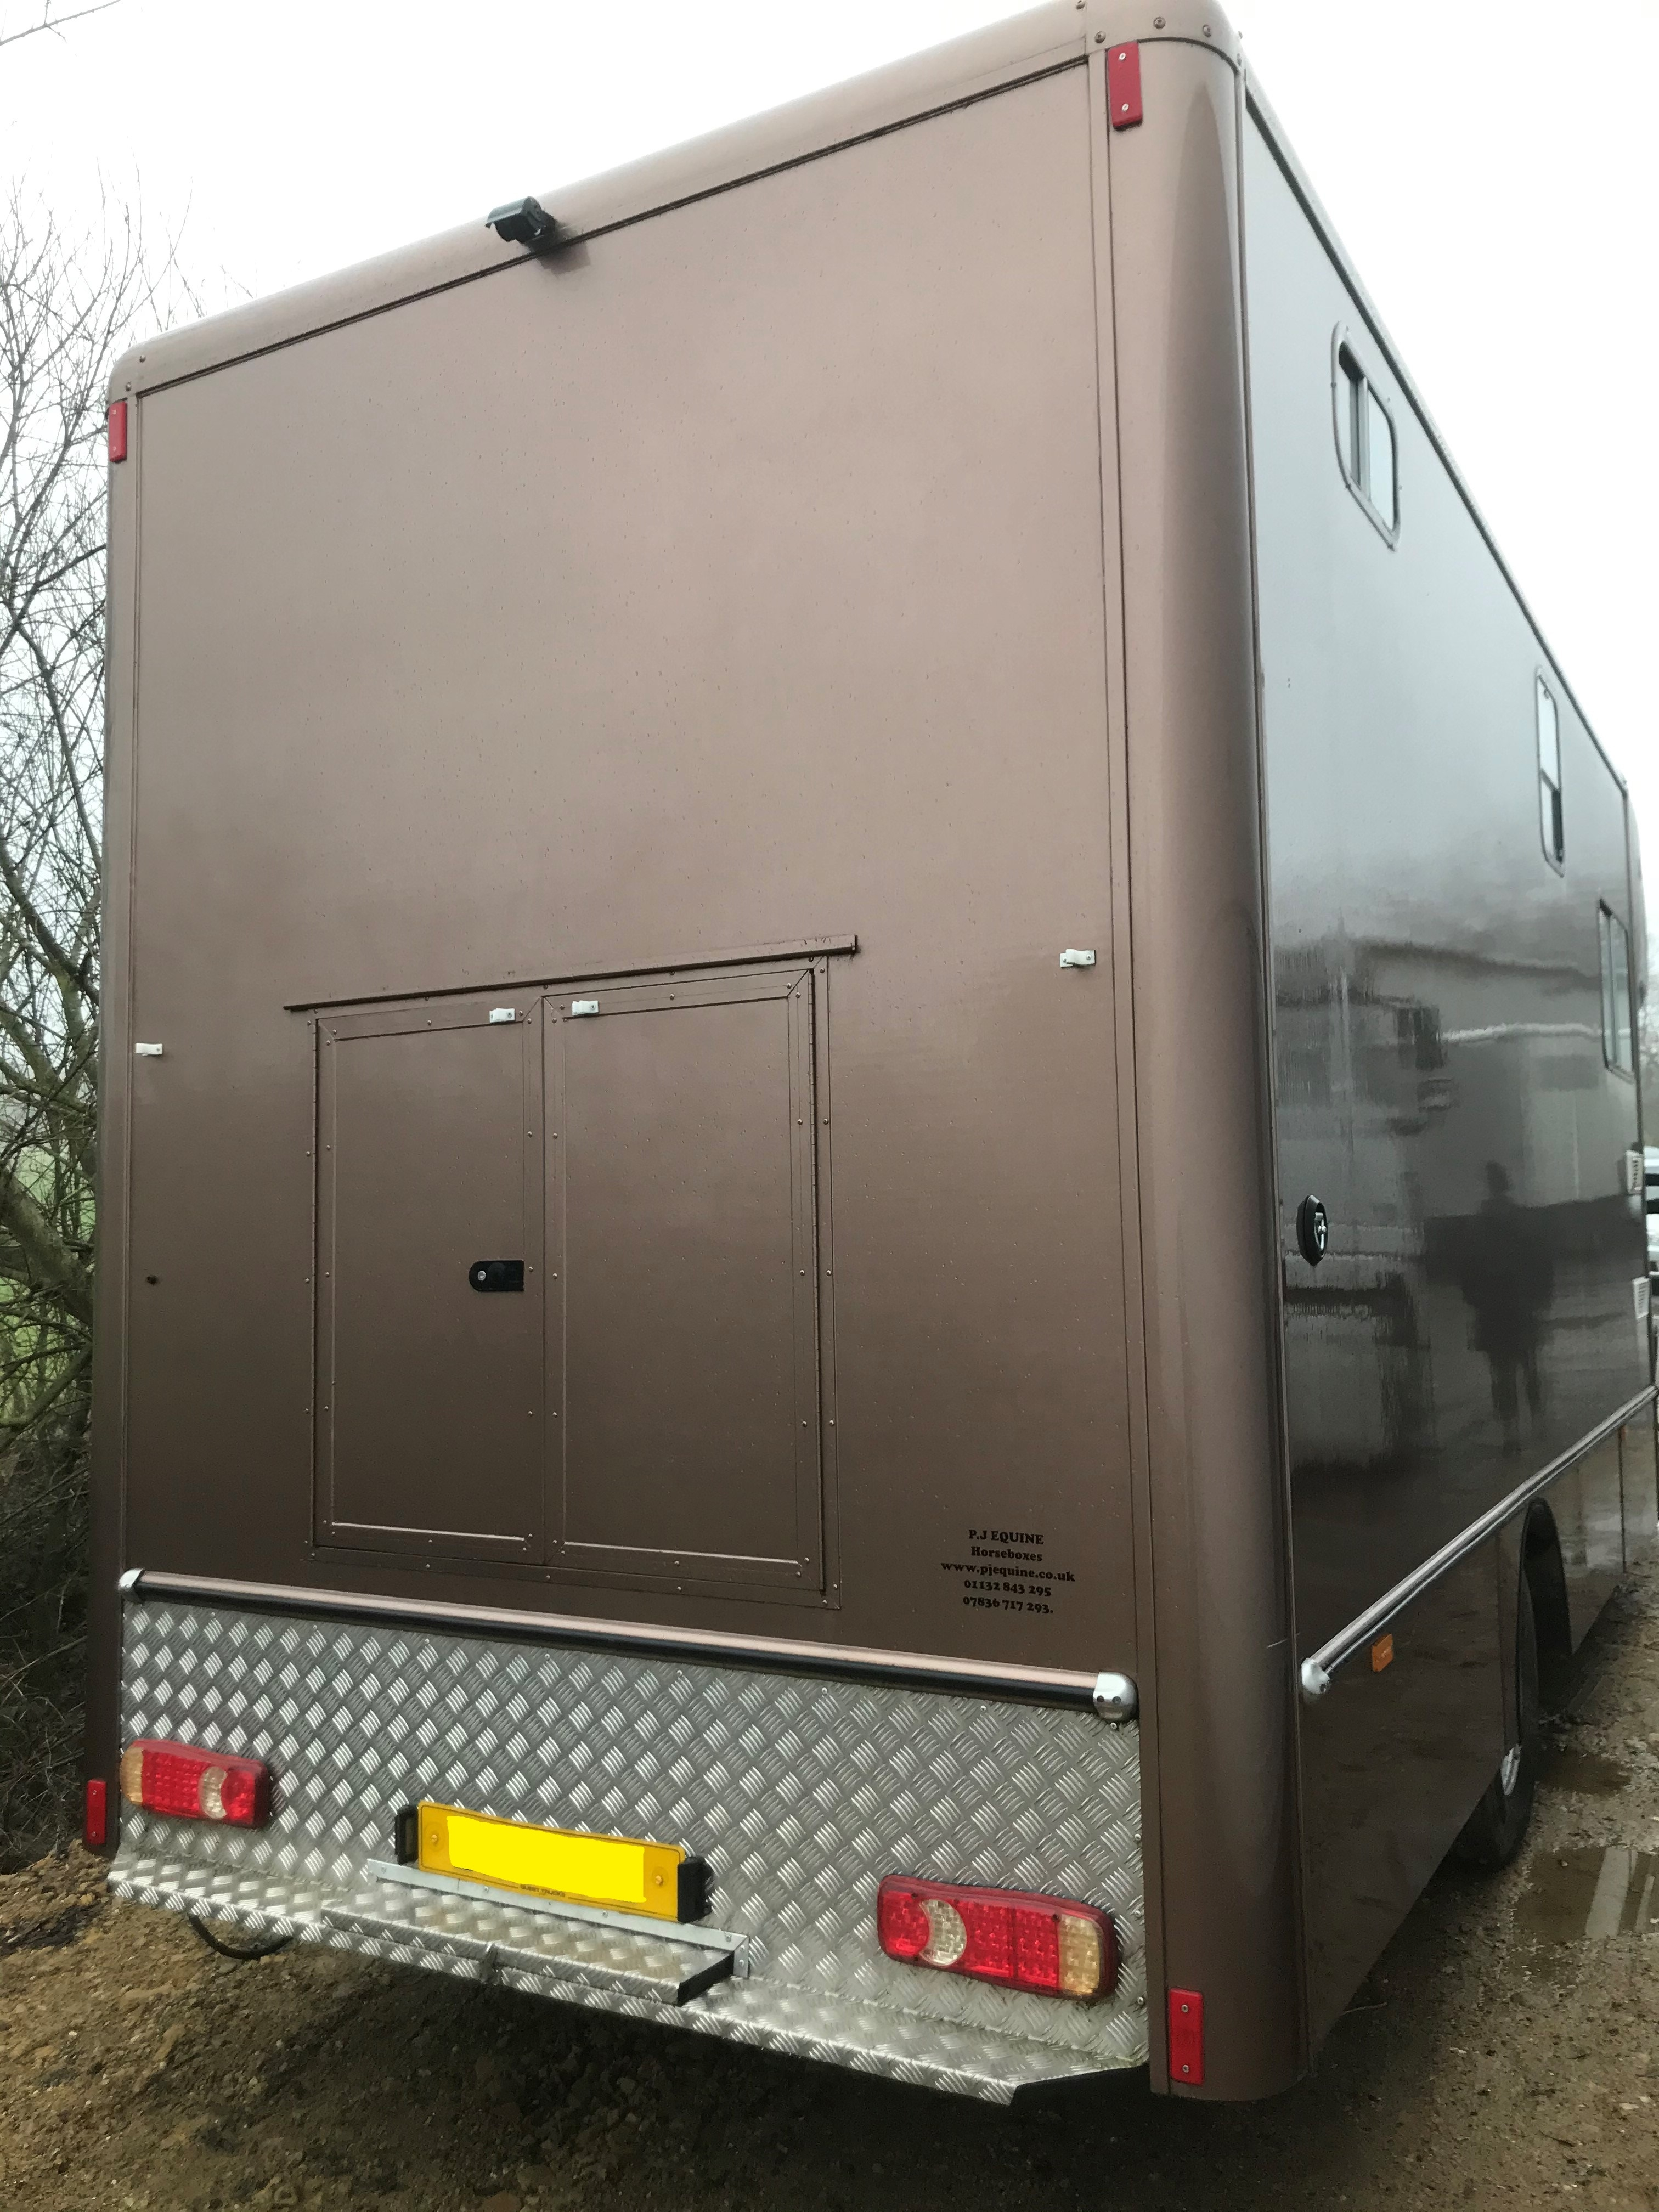 7t horsebox for sale